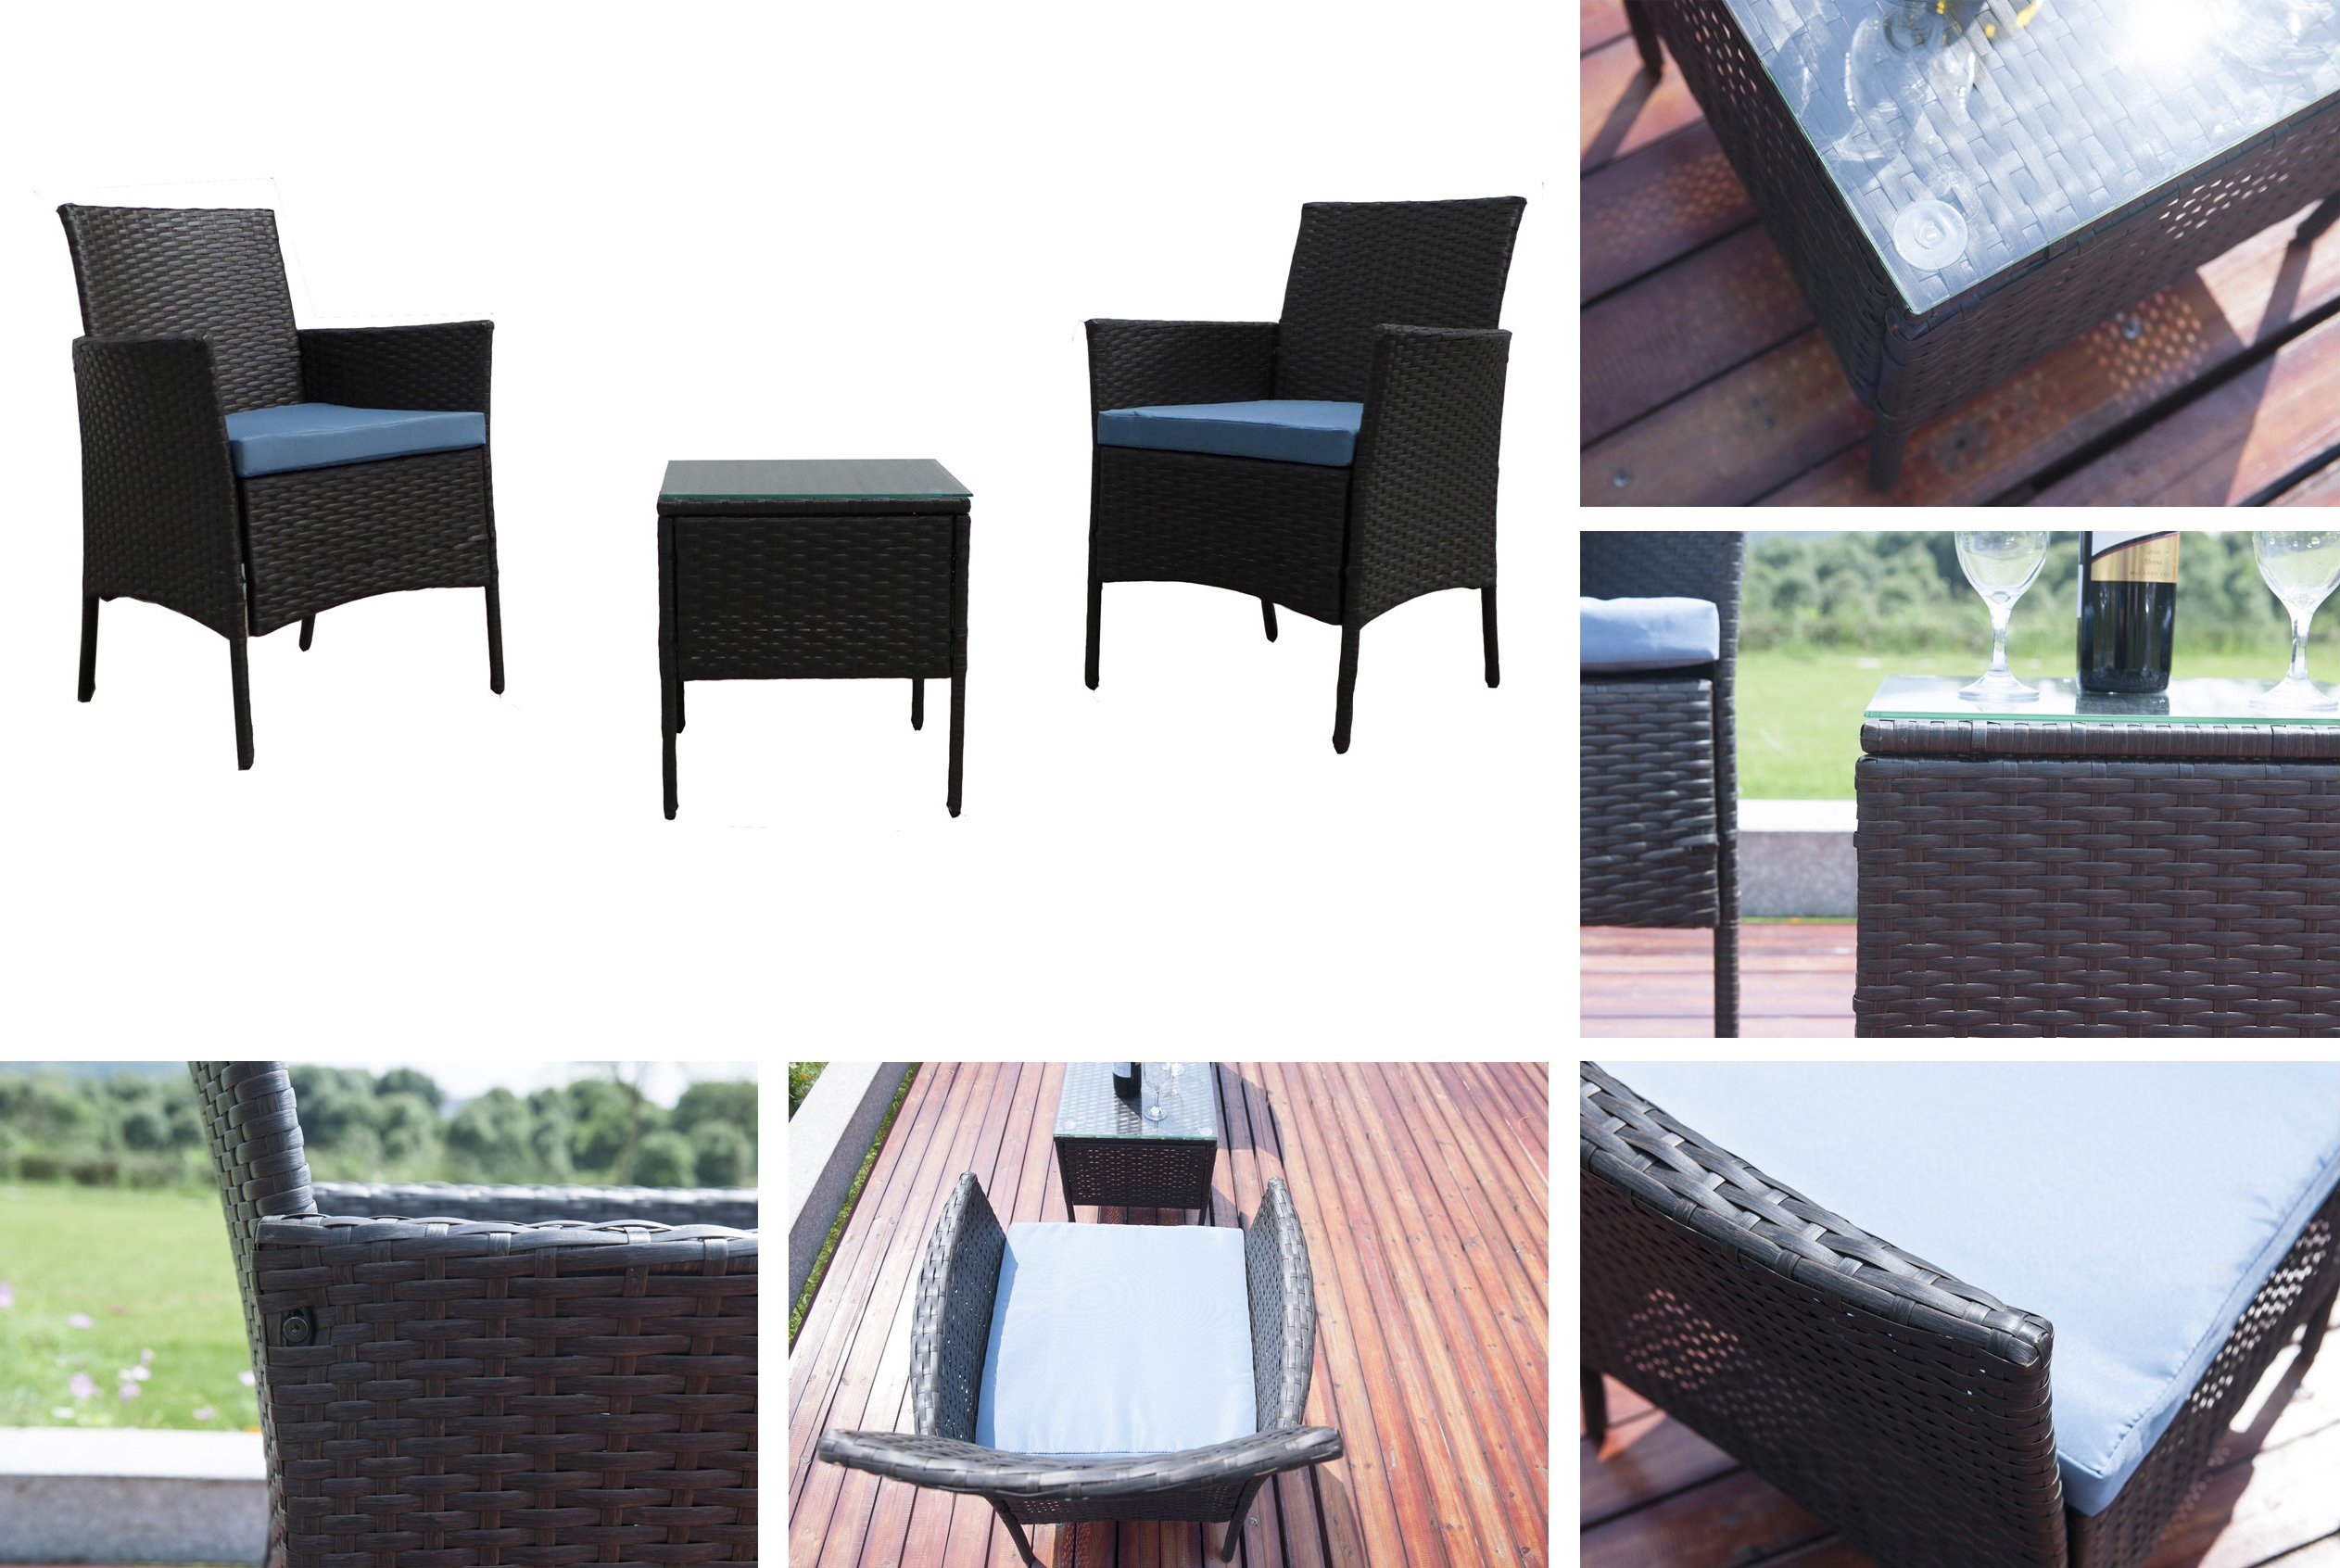 """GOJOOASIS Rattan Patio Outdoor Armchairs PE Wicker Furniture 3 Piece Conversation Set Garden Table and Chairs with Blue Cushions, Brown - 【3PCS CONVERSATION SET】Comes with 2 Armchair, 1 table with tempered glass top, 2 seat cushions, providing relaxation for up to 2 persons. 【RATTAN SECTIONAL DIMENSION】Overall size Armchair: 23.25""""L x 17.75""""W x 32.25""""H; Coffee Table: 15.75""""L x 15.75""""W x 17""""H; Max Load-bearing: 350 lbs for Sofa; 120 lbs for Coffee Table 【DURABLE OUTDOOR FURNITURE】This sectional is constructed from a rust-resistant steel frame and PE Rattan Wicker. Rattan is naturally more durable and long-lasting than traditional wicker making this piece more heat and weather resistant than similar wicker furniture. - patio-furniture, patio, conversation-sets - 81kHncEfwdL -"""